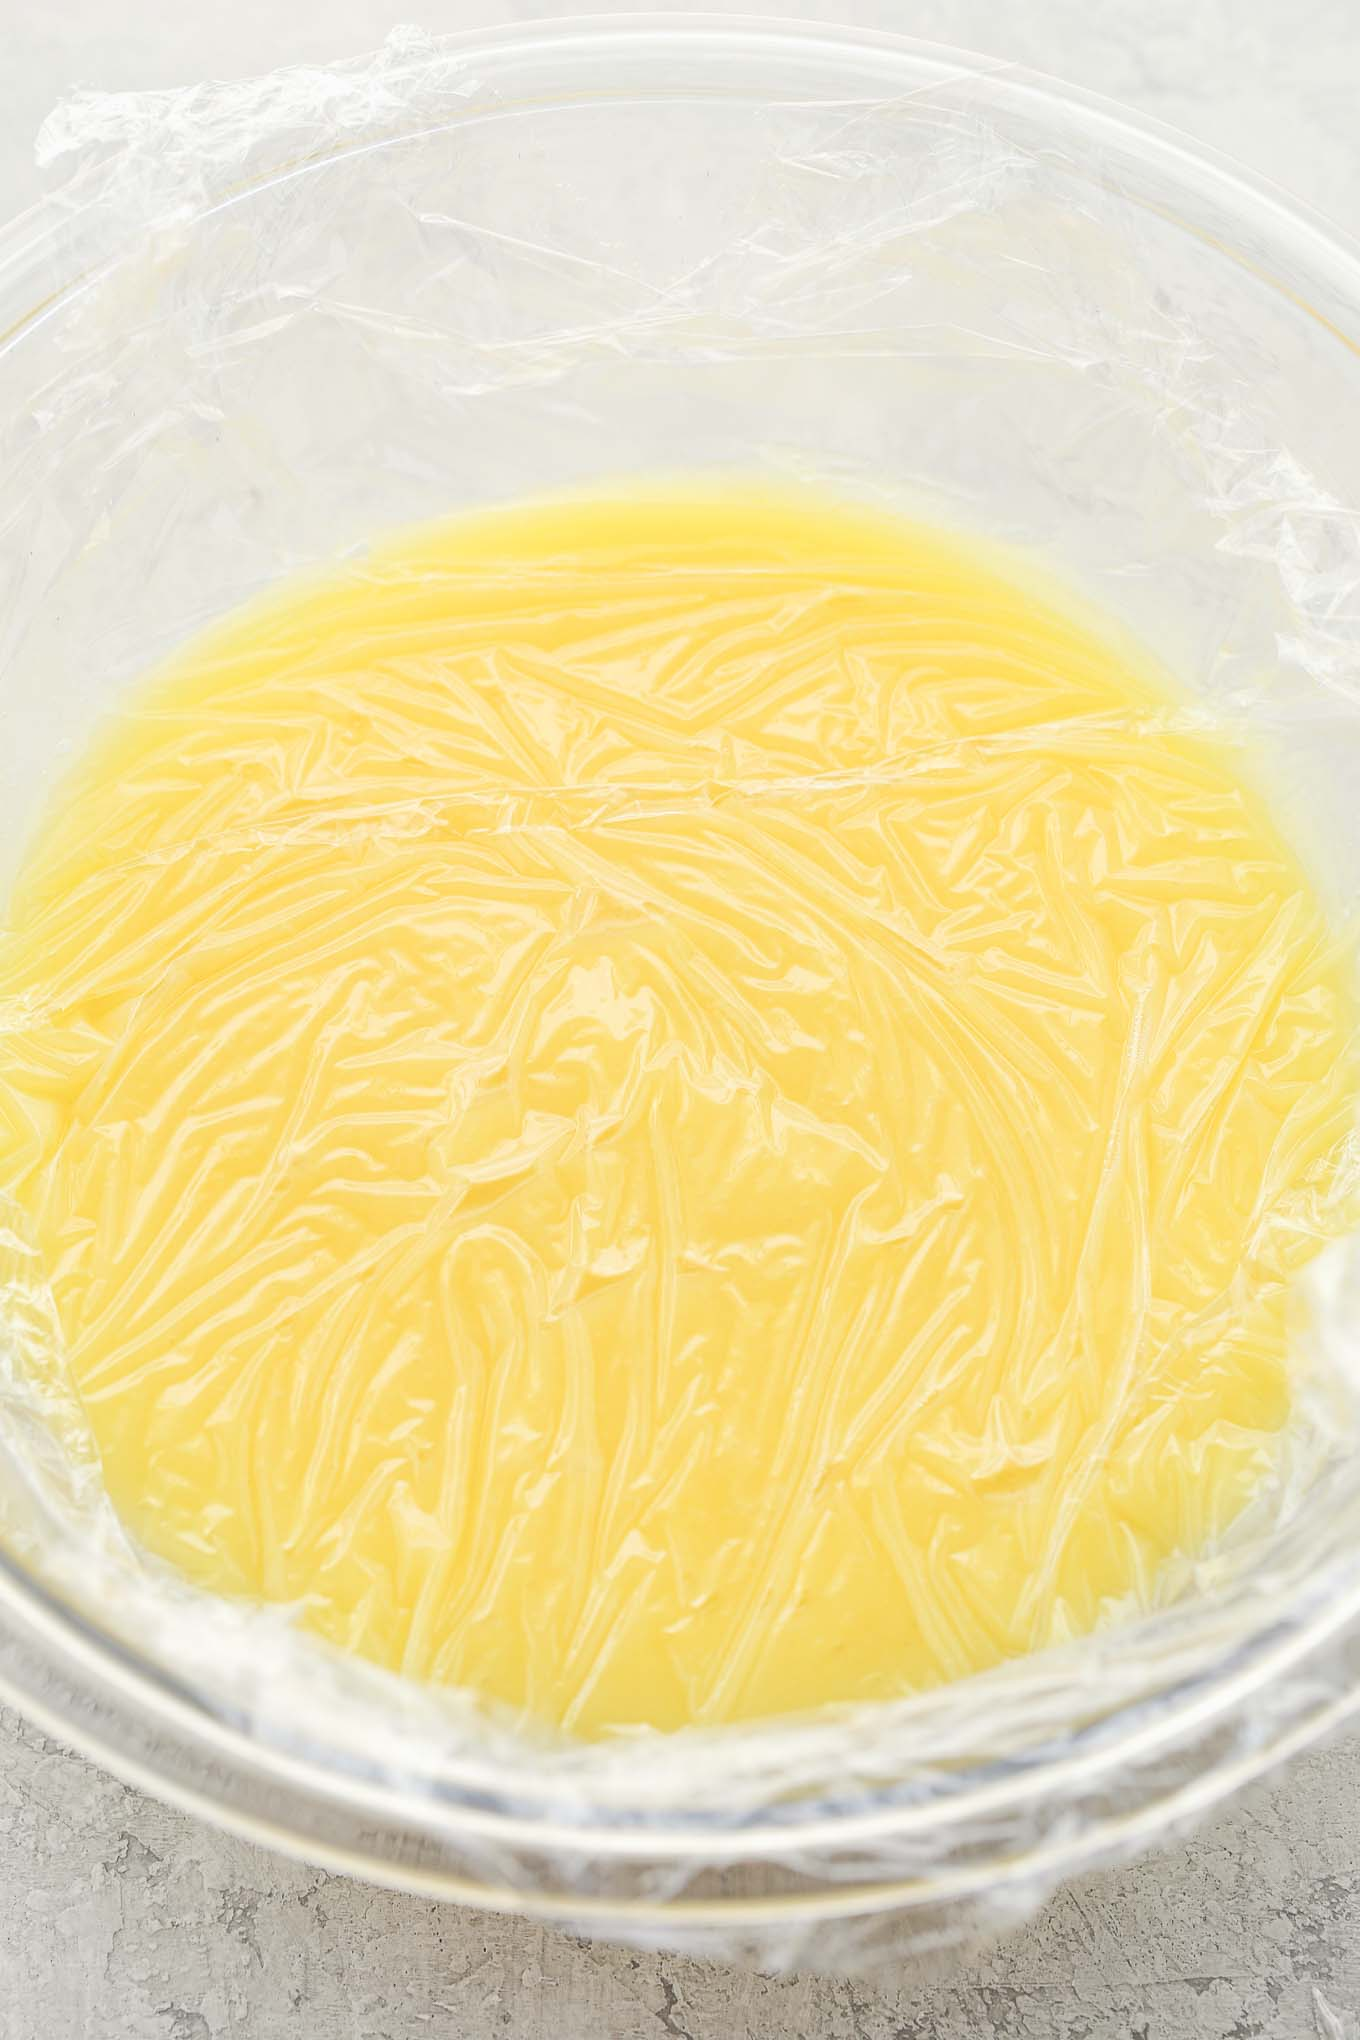 An easy recipe for lemon curd made in the microwave. This Microwave Lemon Curd is easy to make, delicious, and there are so many ways to use it!